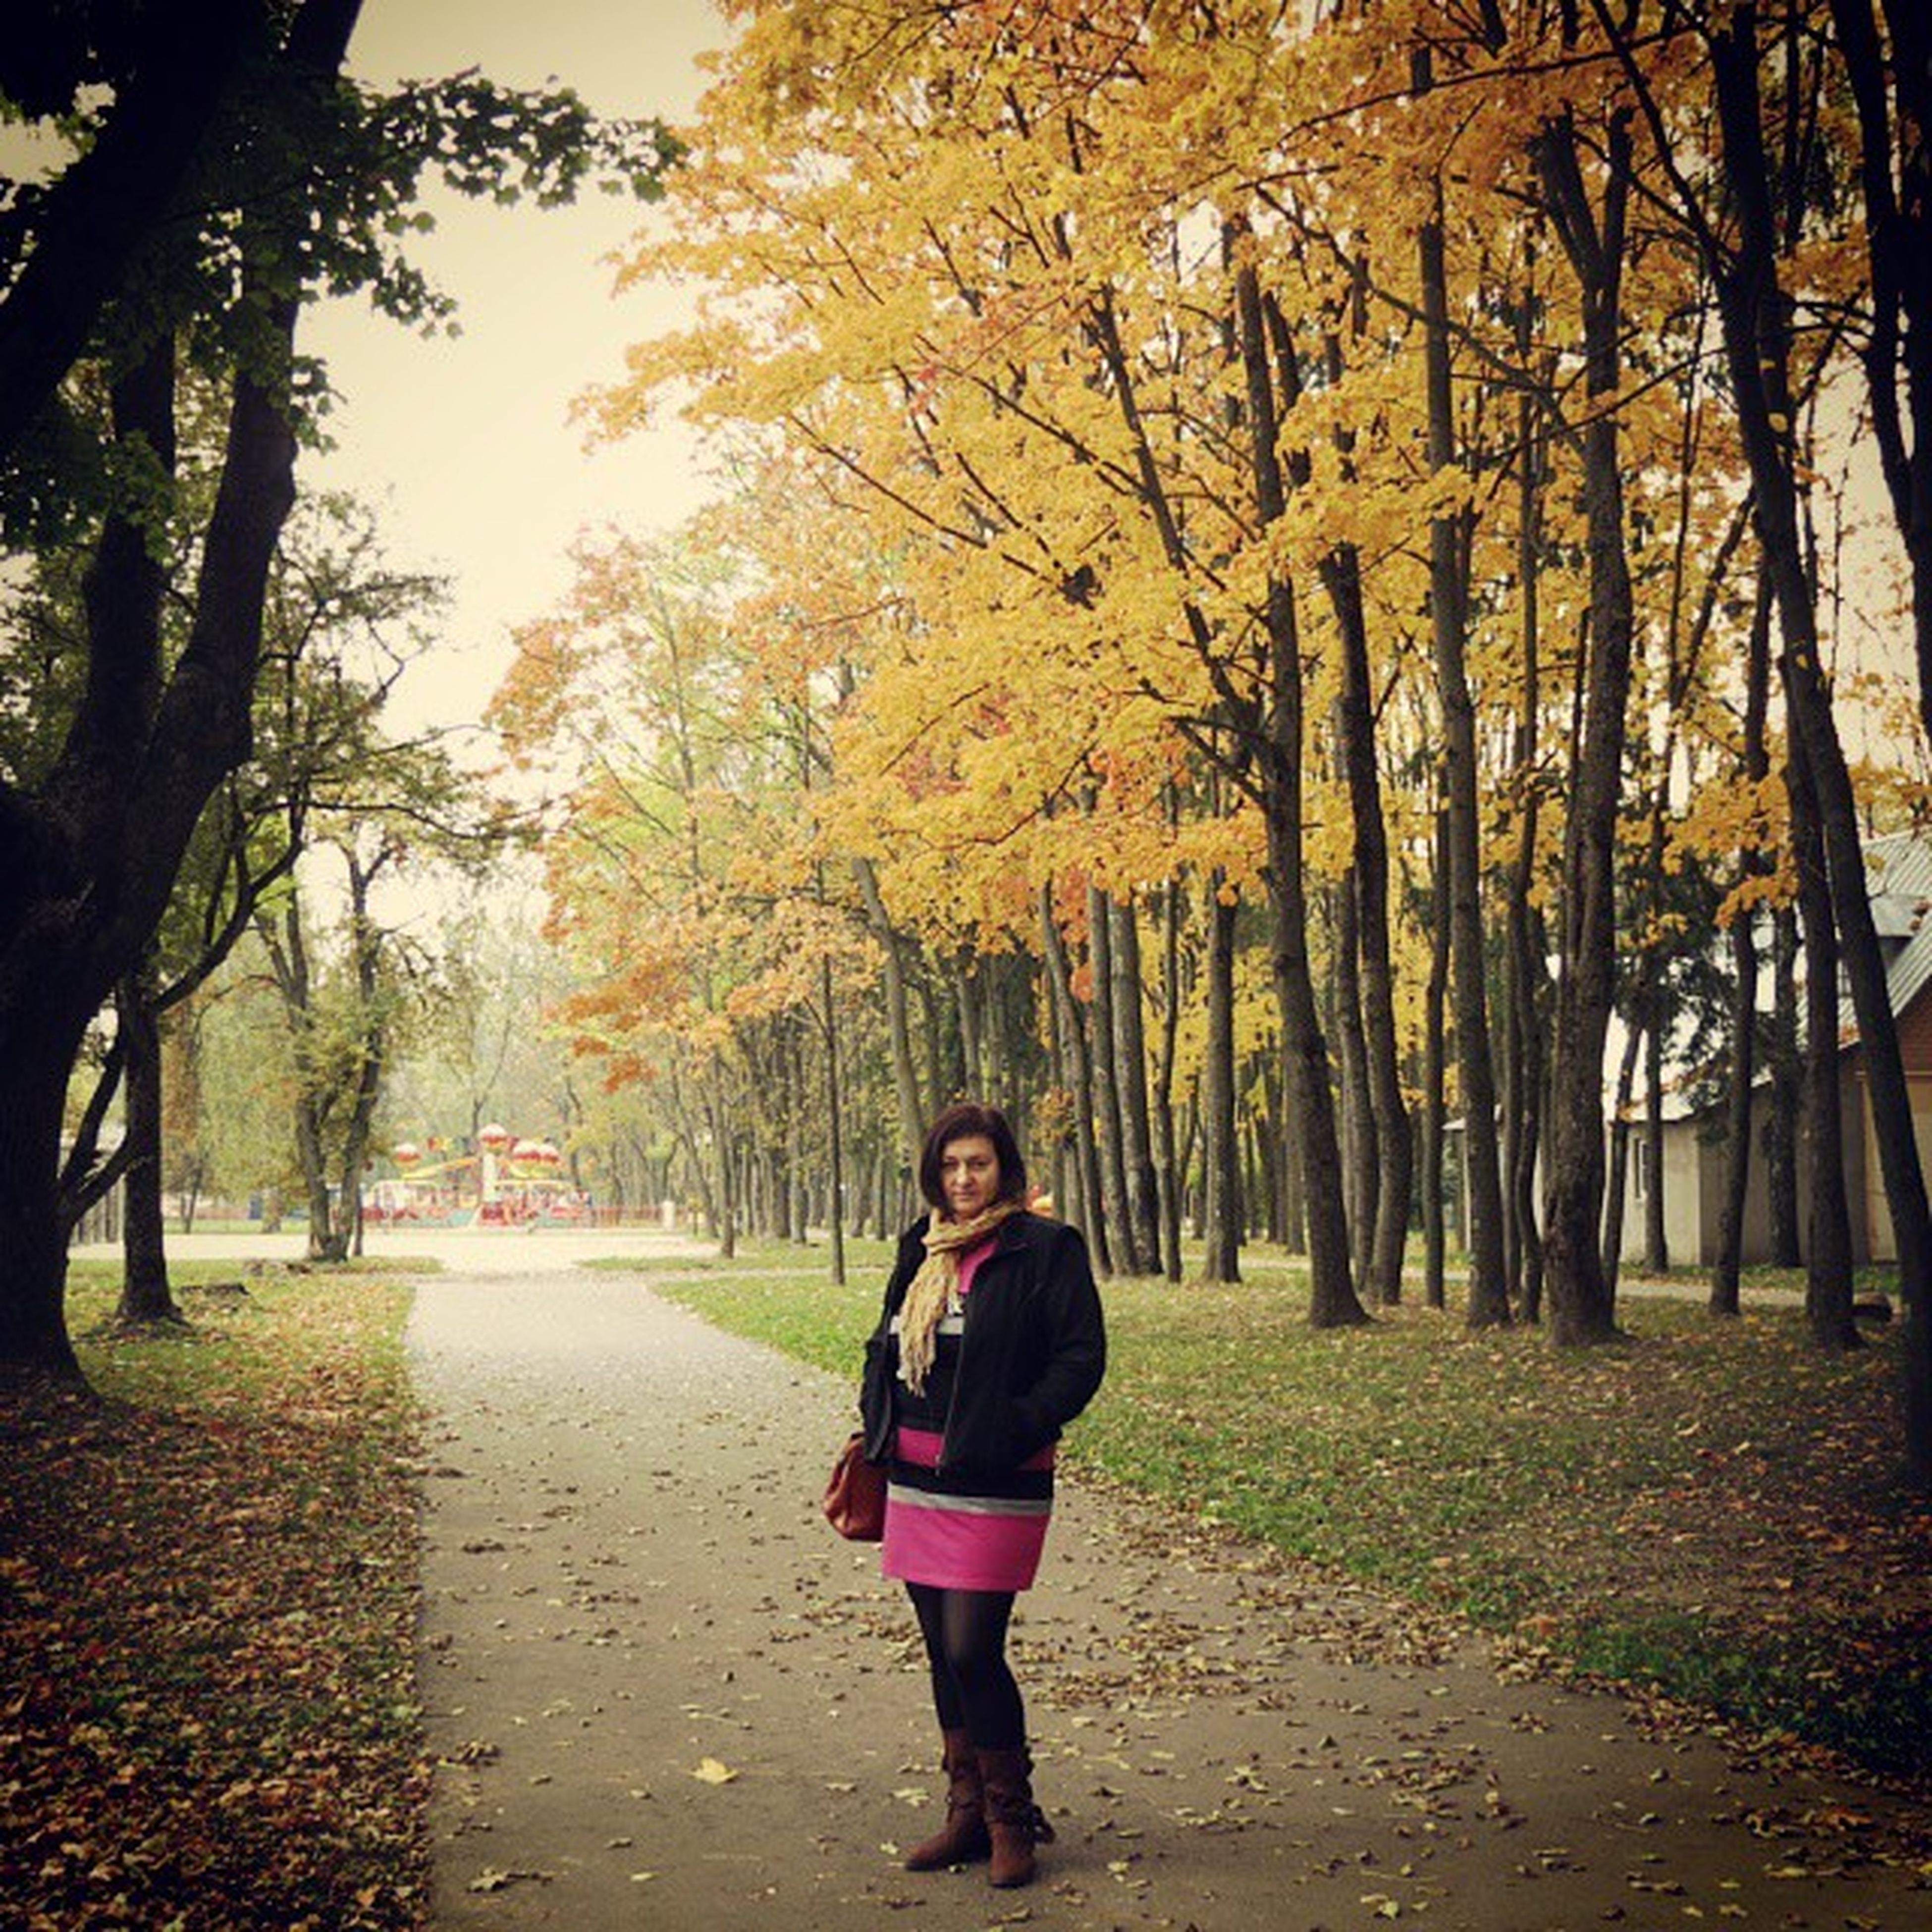 tree, lifestyles, casual clothing, leisure activity, full length, person, front view, looking at camera, autumn, young adult, standing, tree trunk, park - man made space, portrait, change, young women, season, outdoors